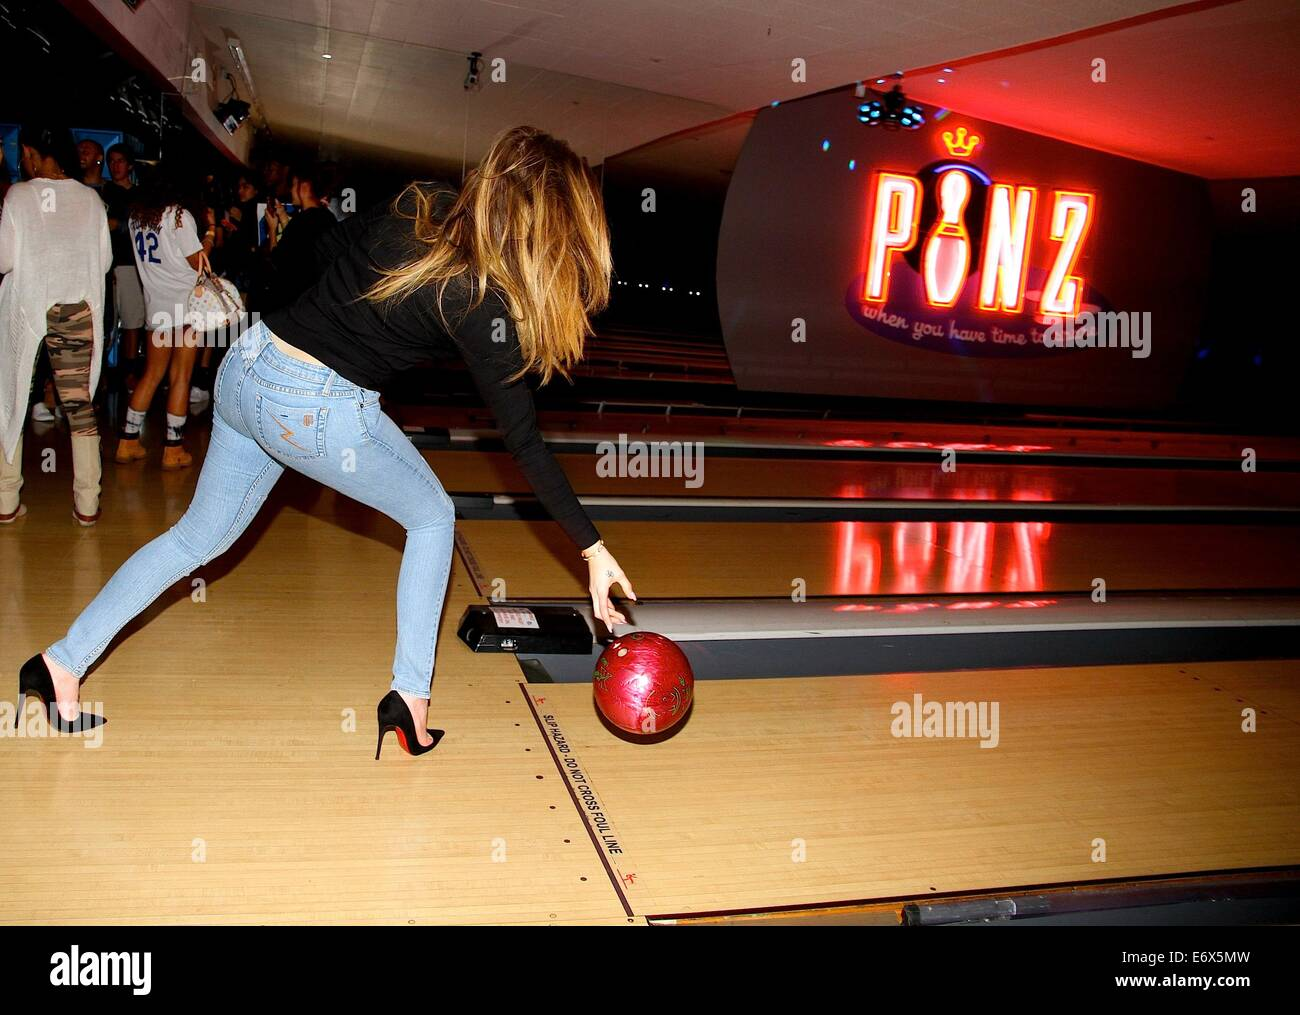 32 Best Celebrity Bowling images | Bowling, Celebrities ...